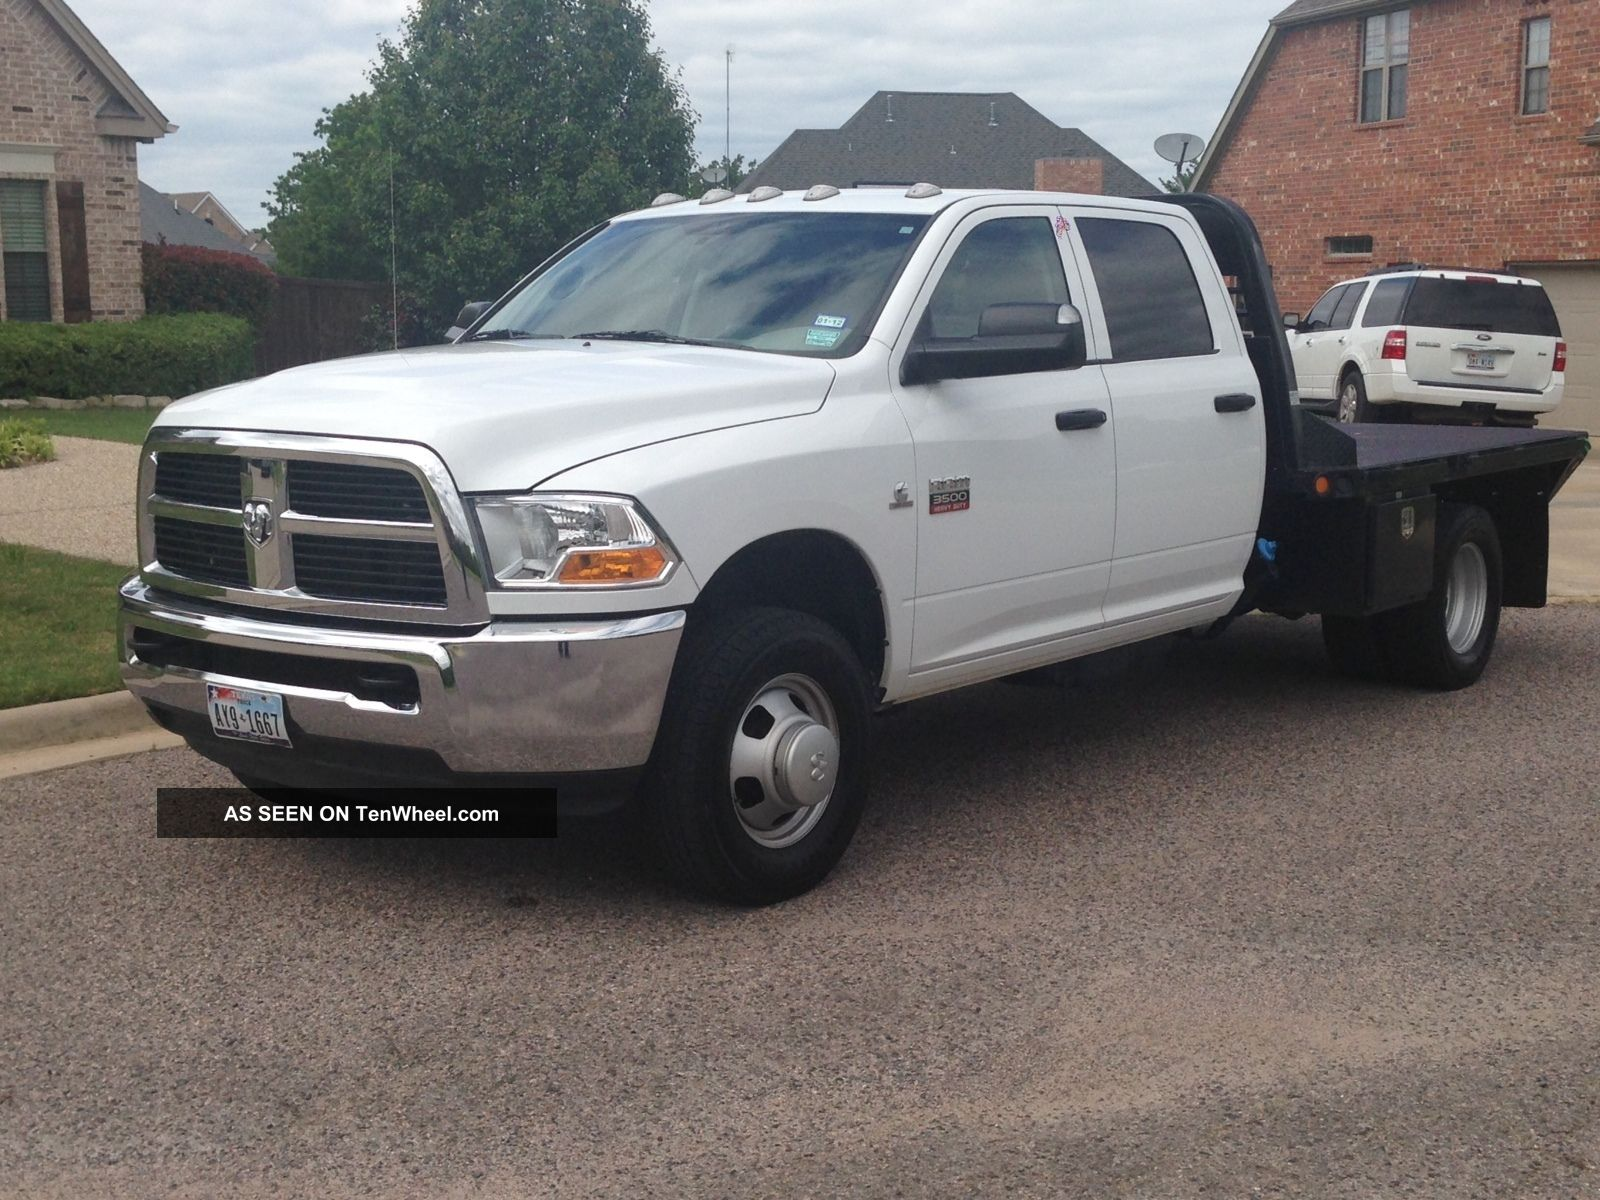 2011 Dodge 3500 Crew Cab 6.  7l Cummins Diesel Cm Trailers Flatbed Dually Ram 3500 photo